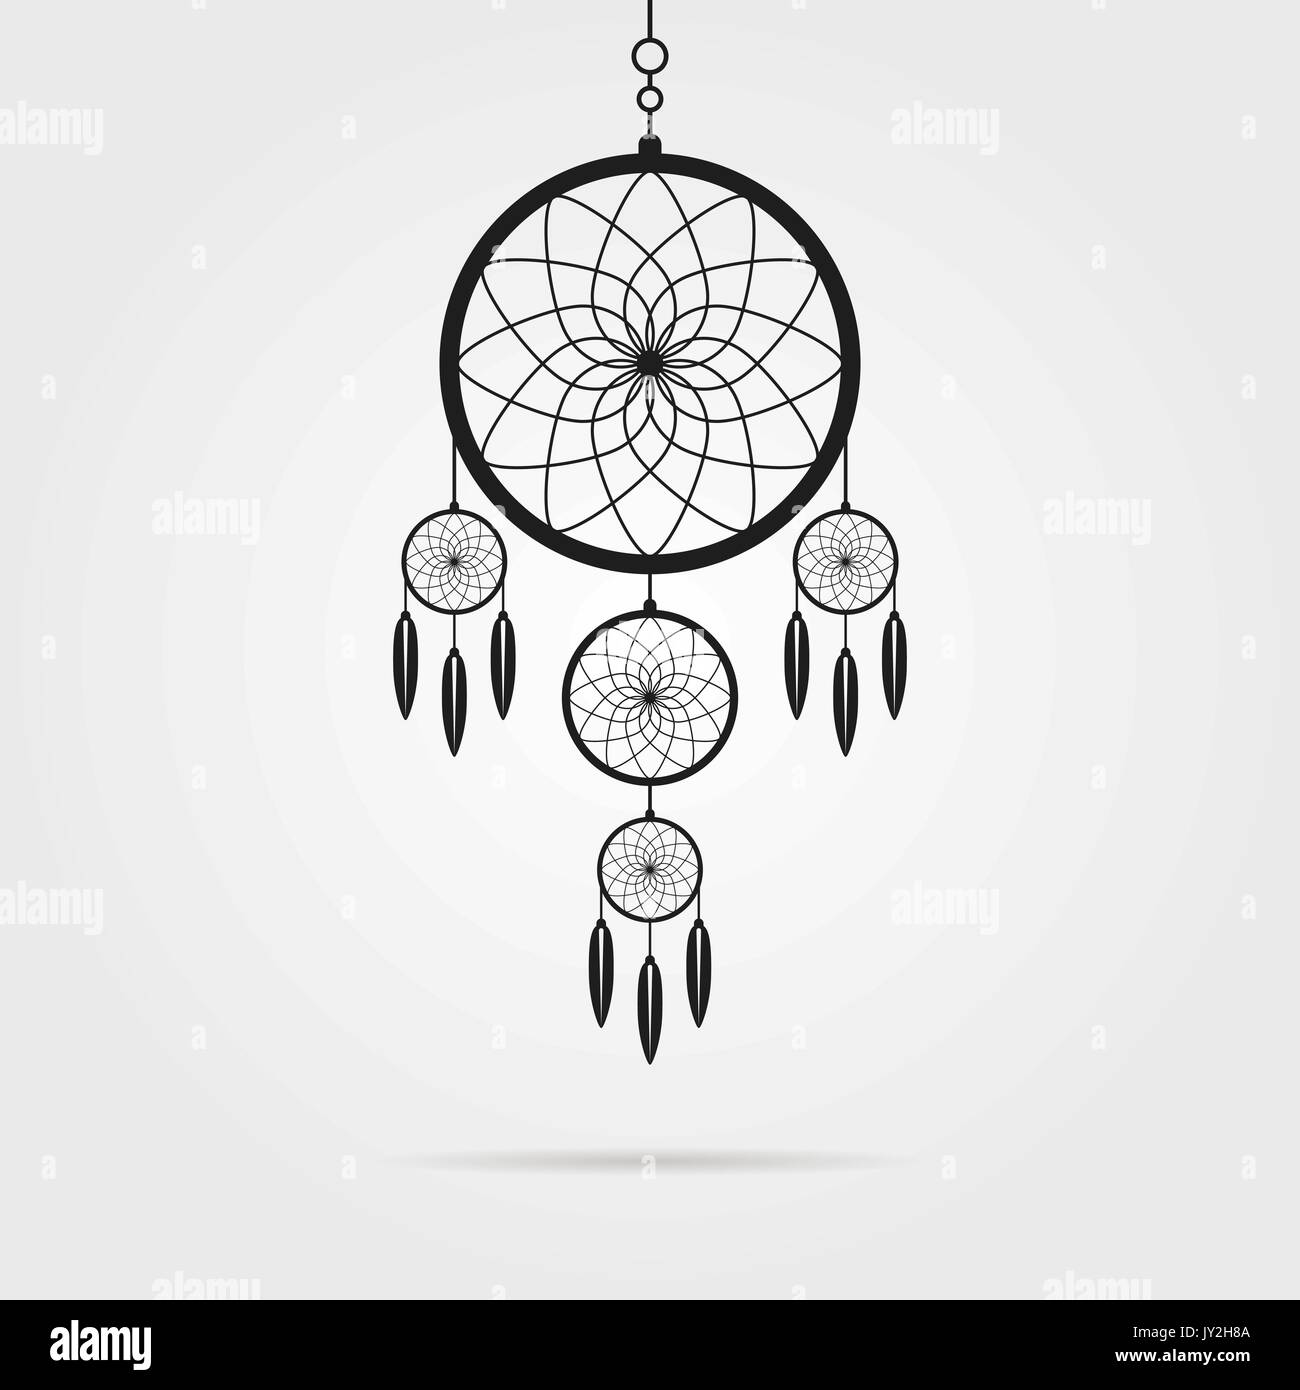 black dream catcher icon with shadow - Stock Image